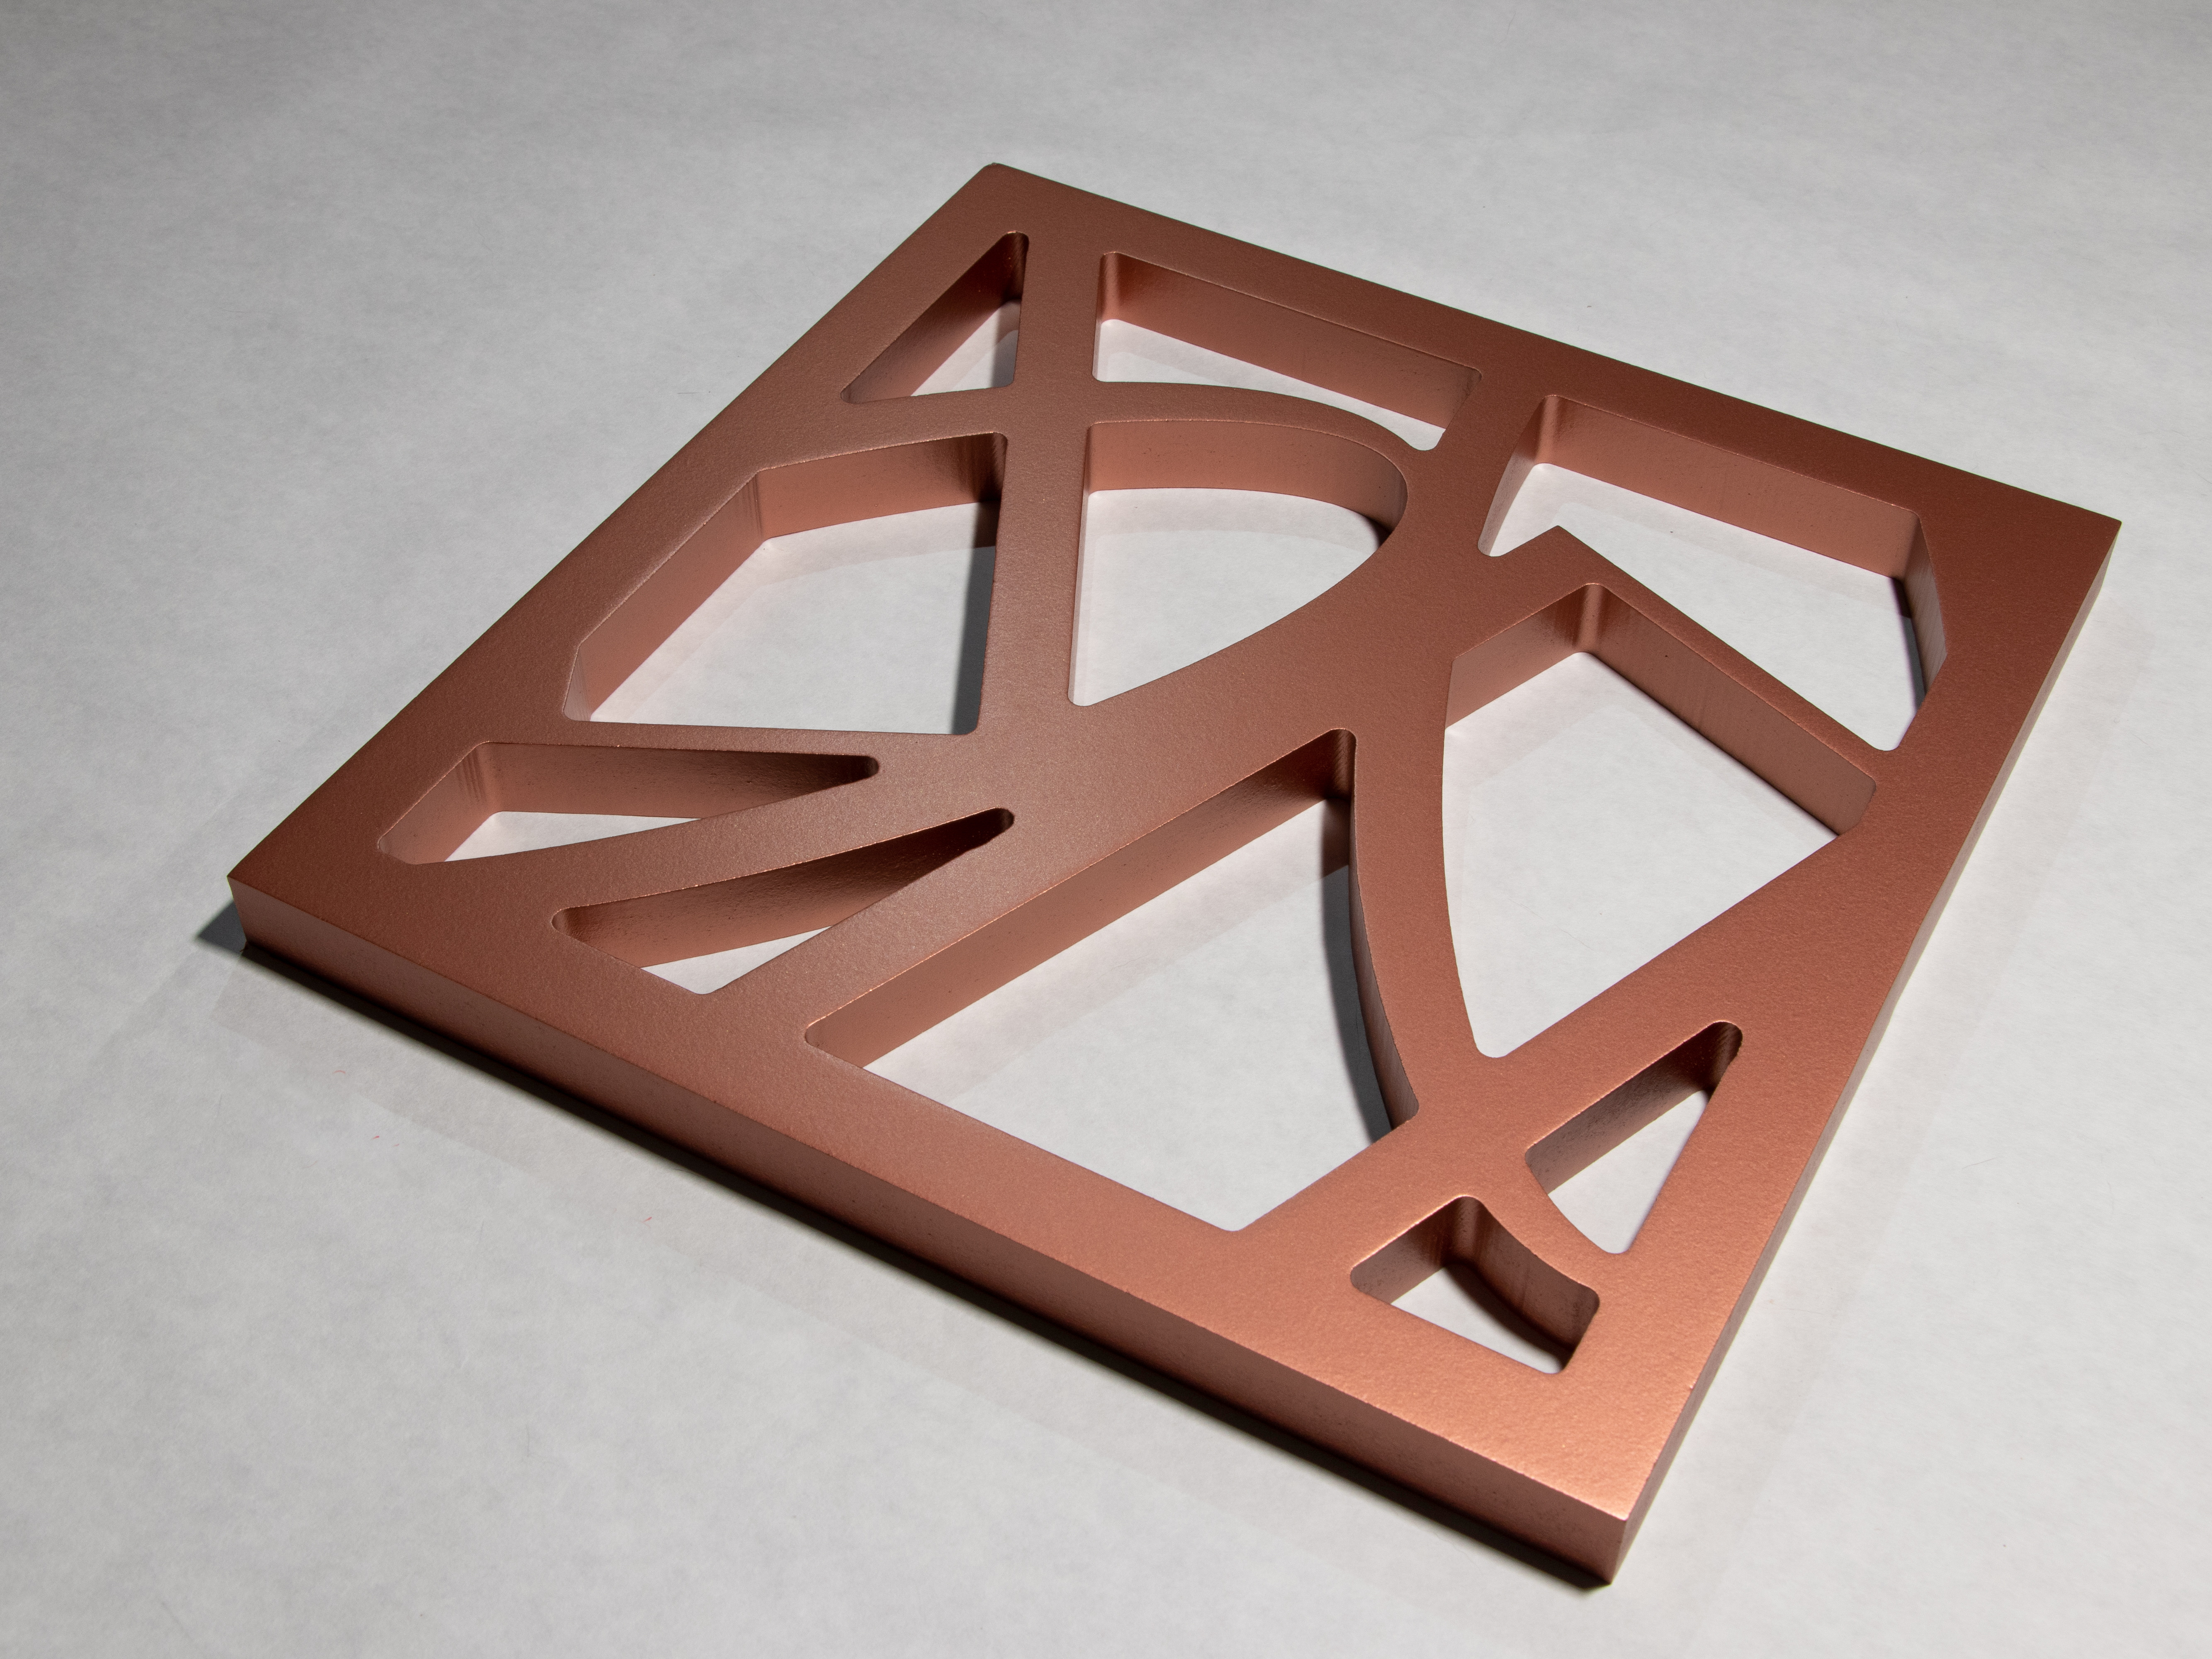 Elements - Copper Penny (579)